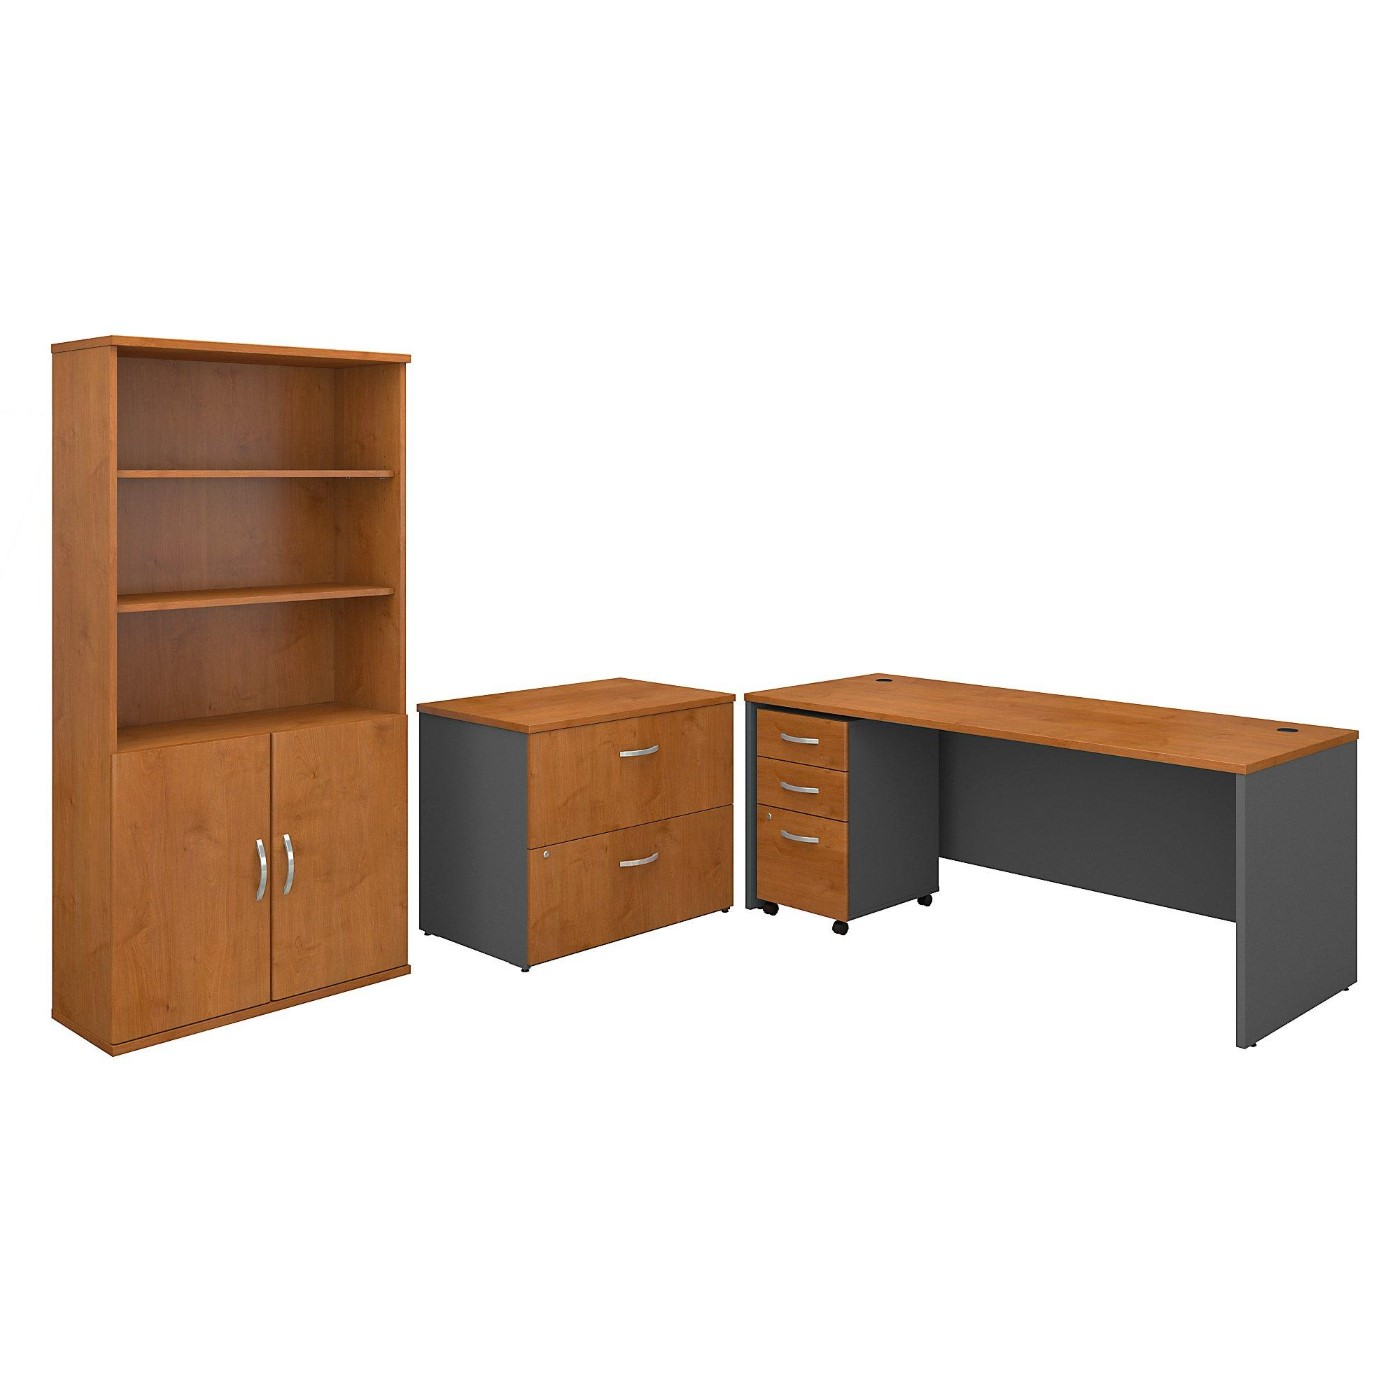 <font color=#c60><b>BUSH BUSINESS FURNITURE SERIES C 72W OFFICE DESK WITH BOOKCASE AND FILE CABINETS. FREE SHIPPING</font></b></font></b>